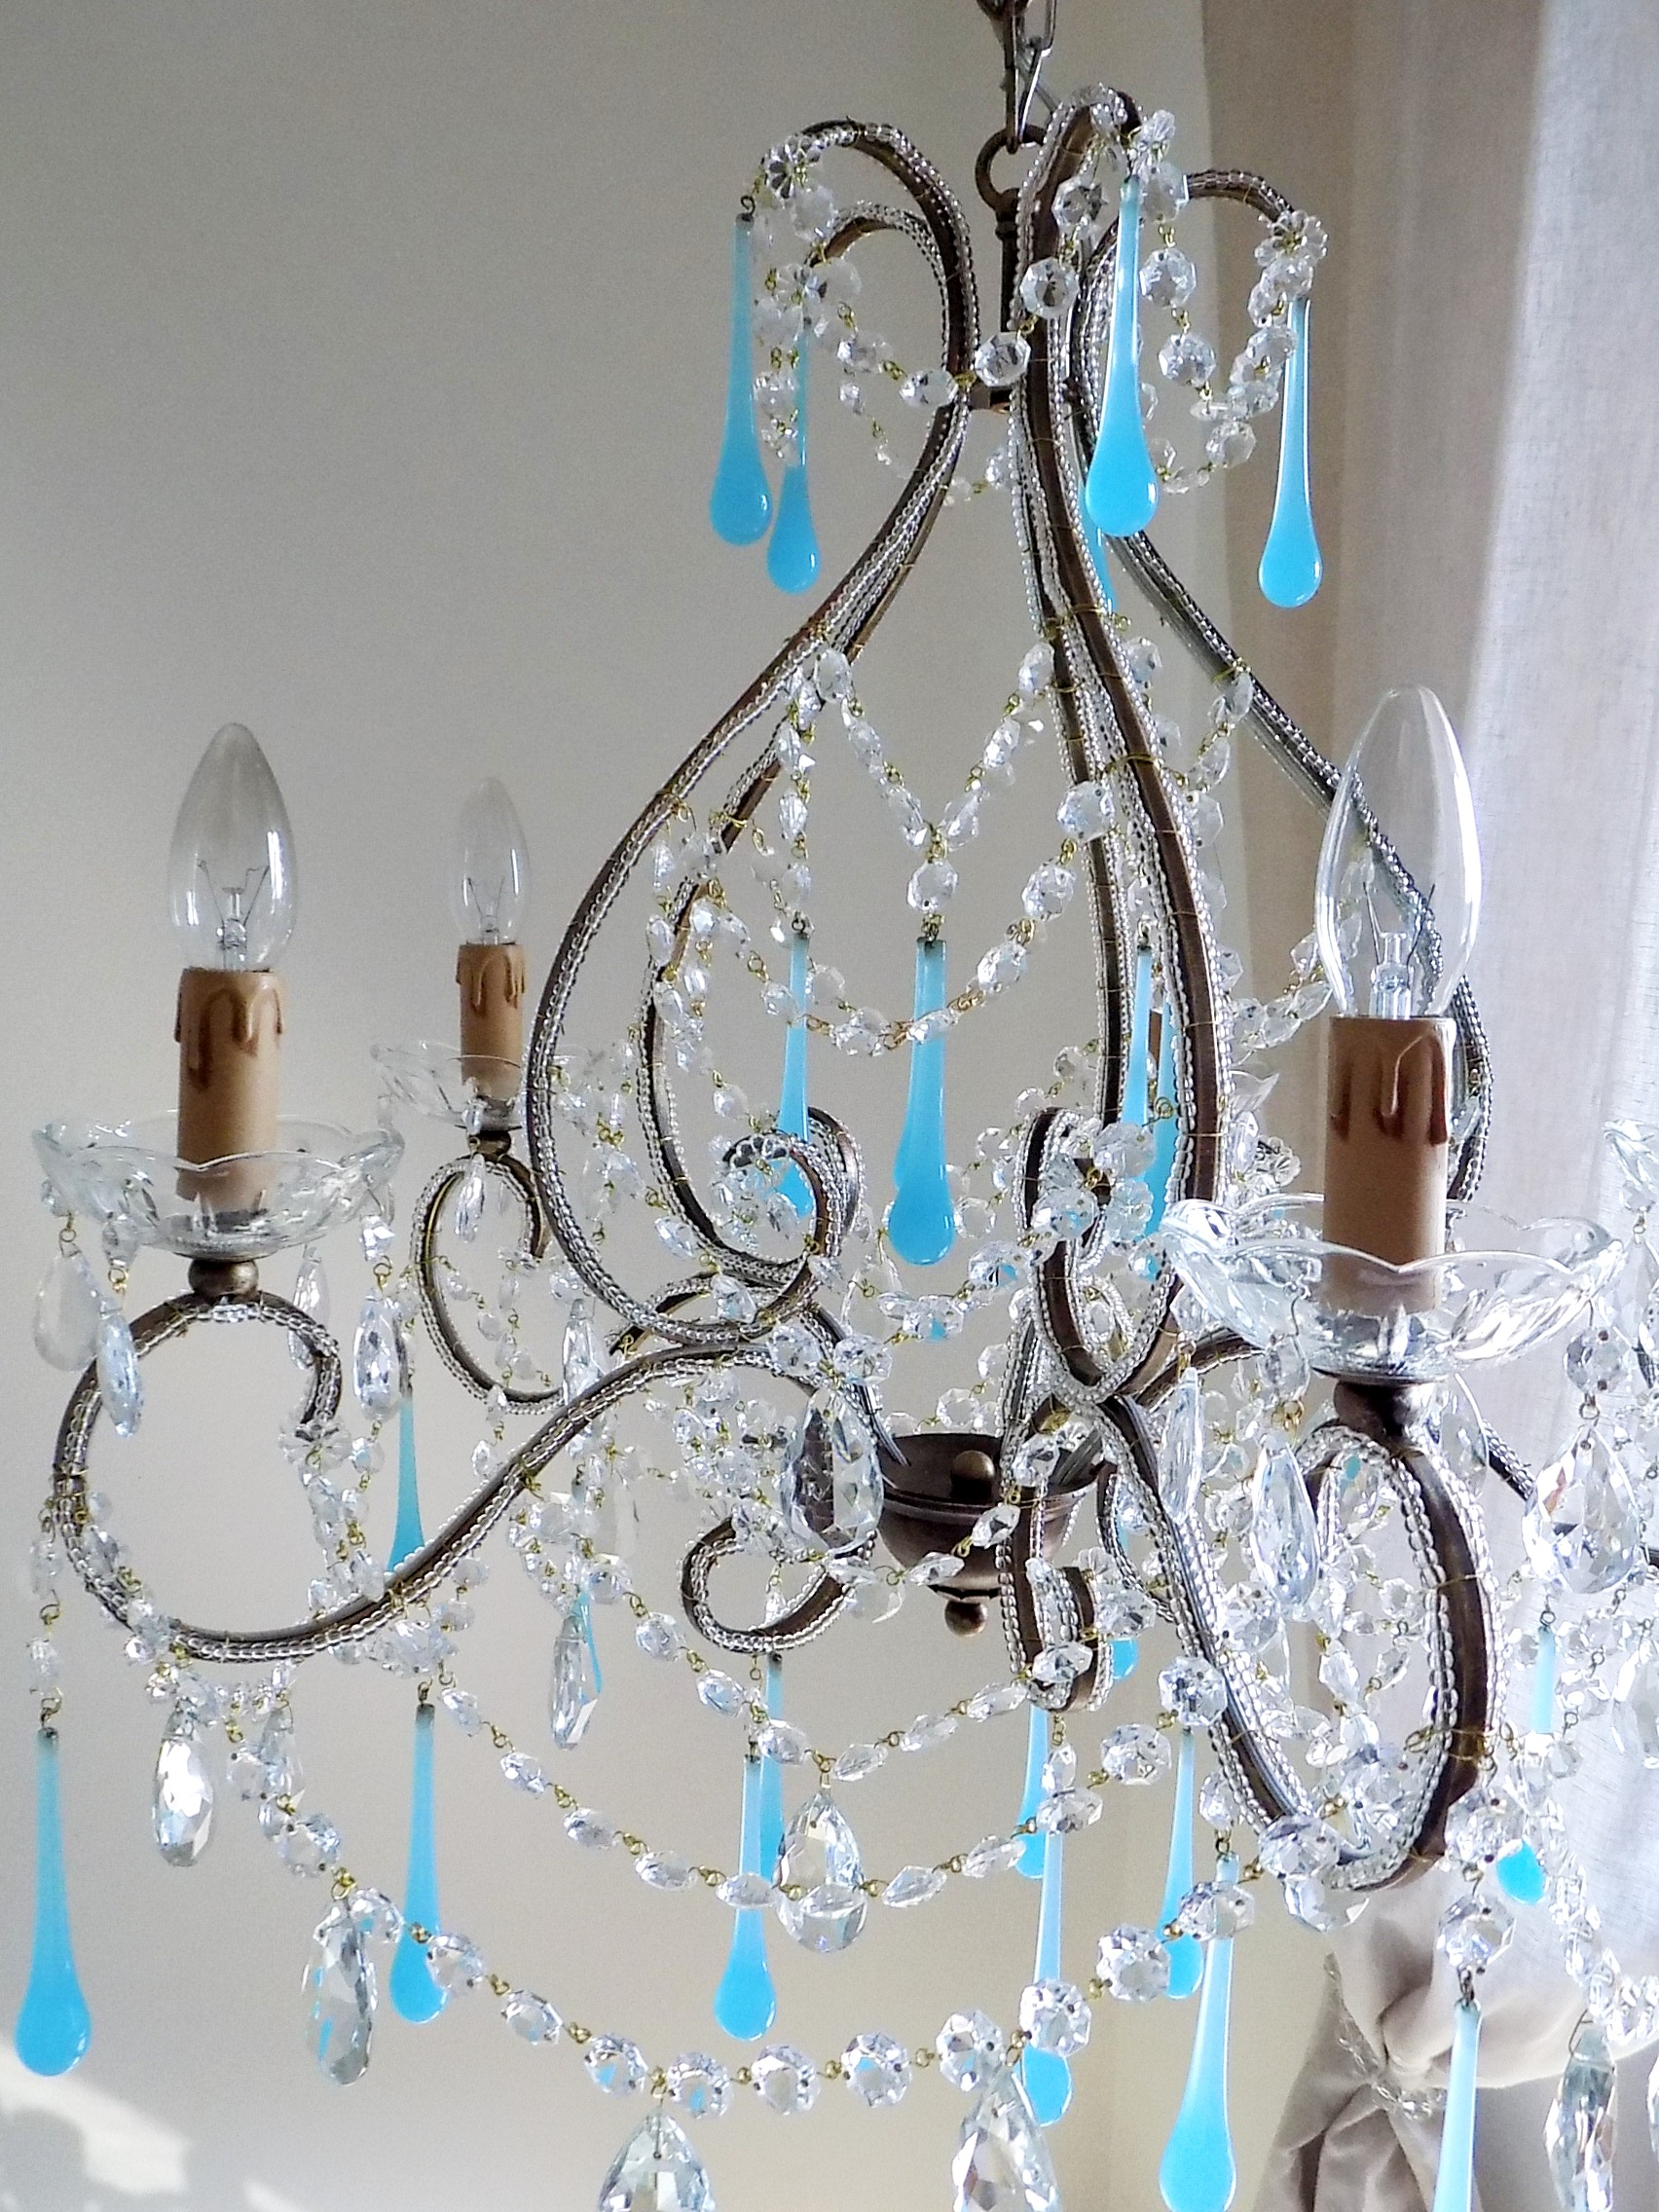 Italian vintage 9 arms chandelier with rare shaped crystals